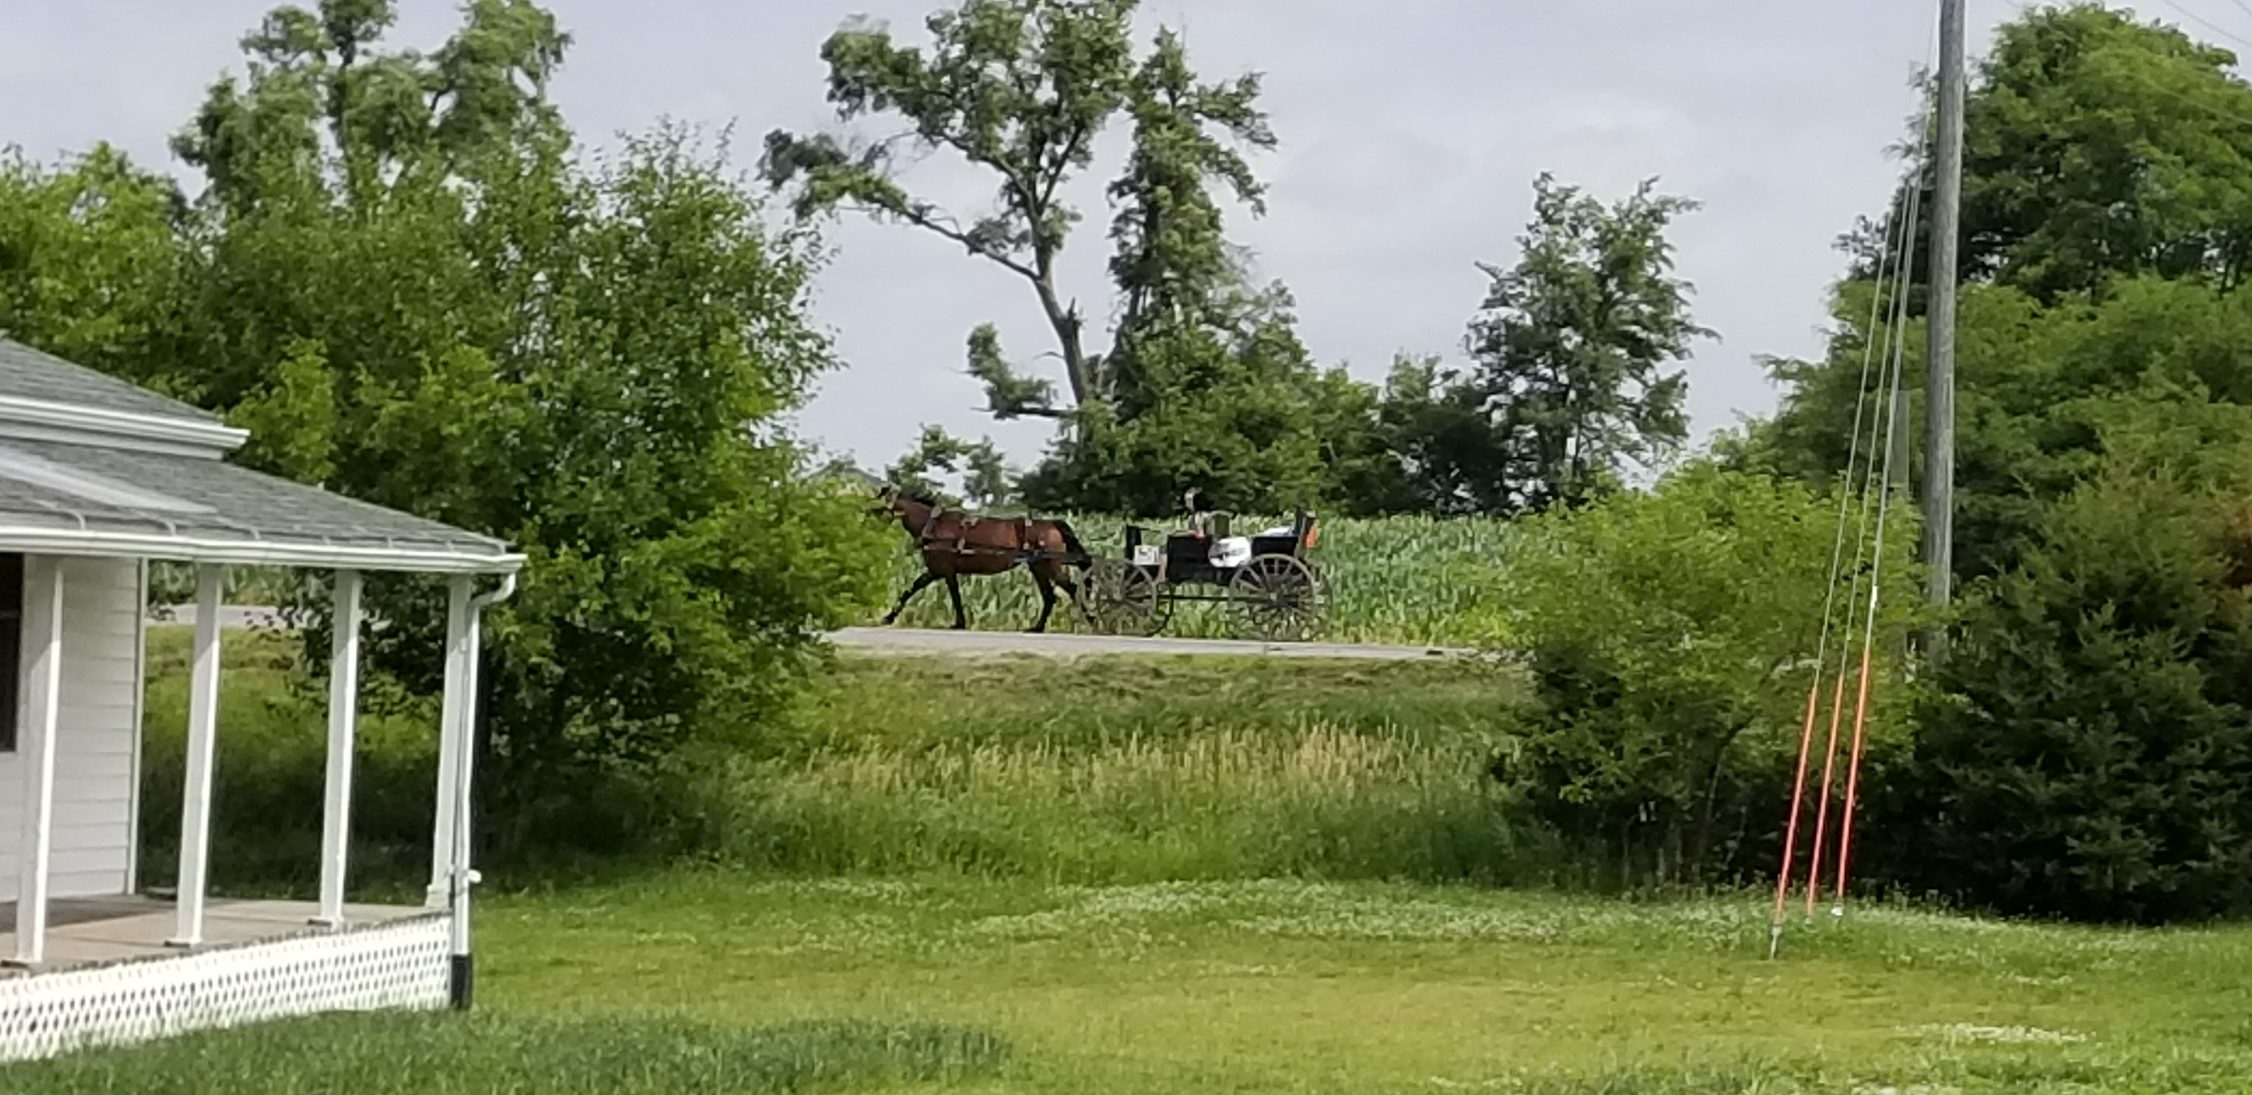 An Amish buggy drives down a road, led by two horses.